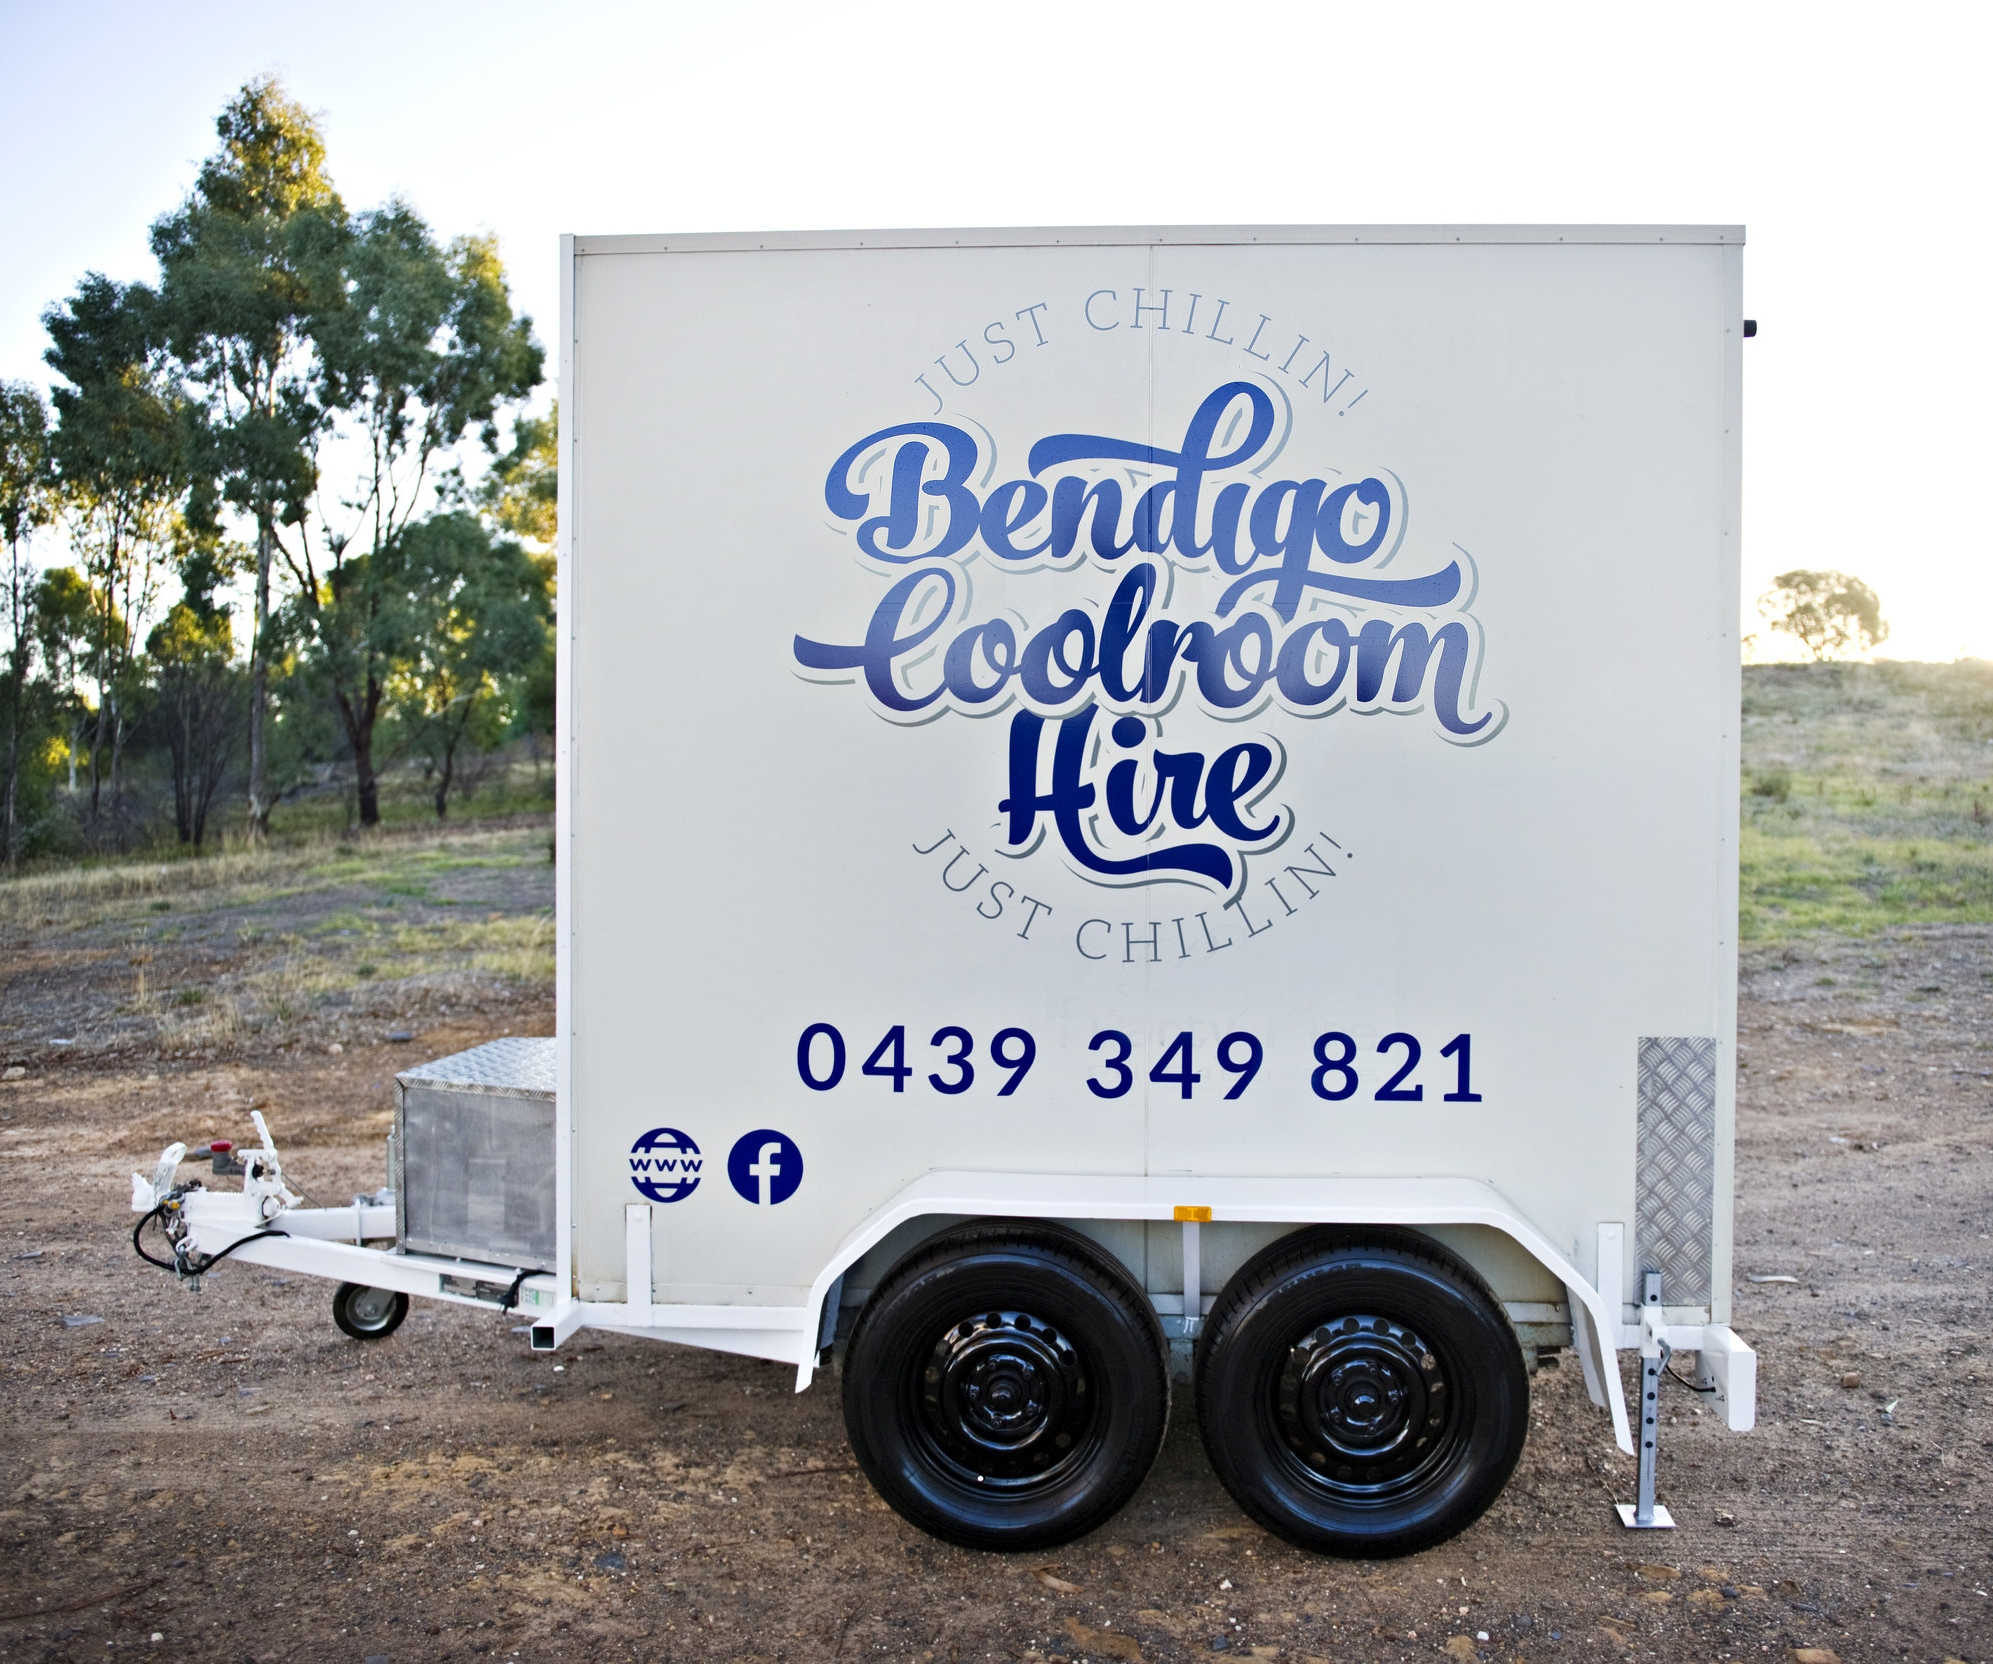 Bendigo Coolroom Hire05.jpg